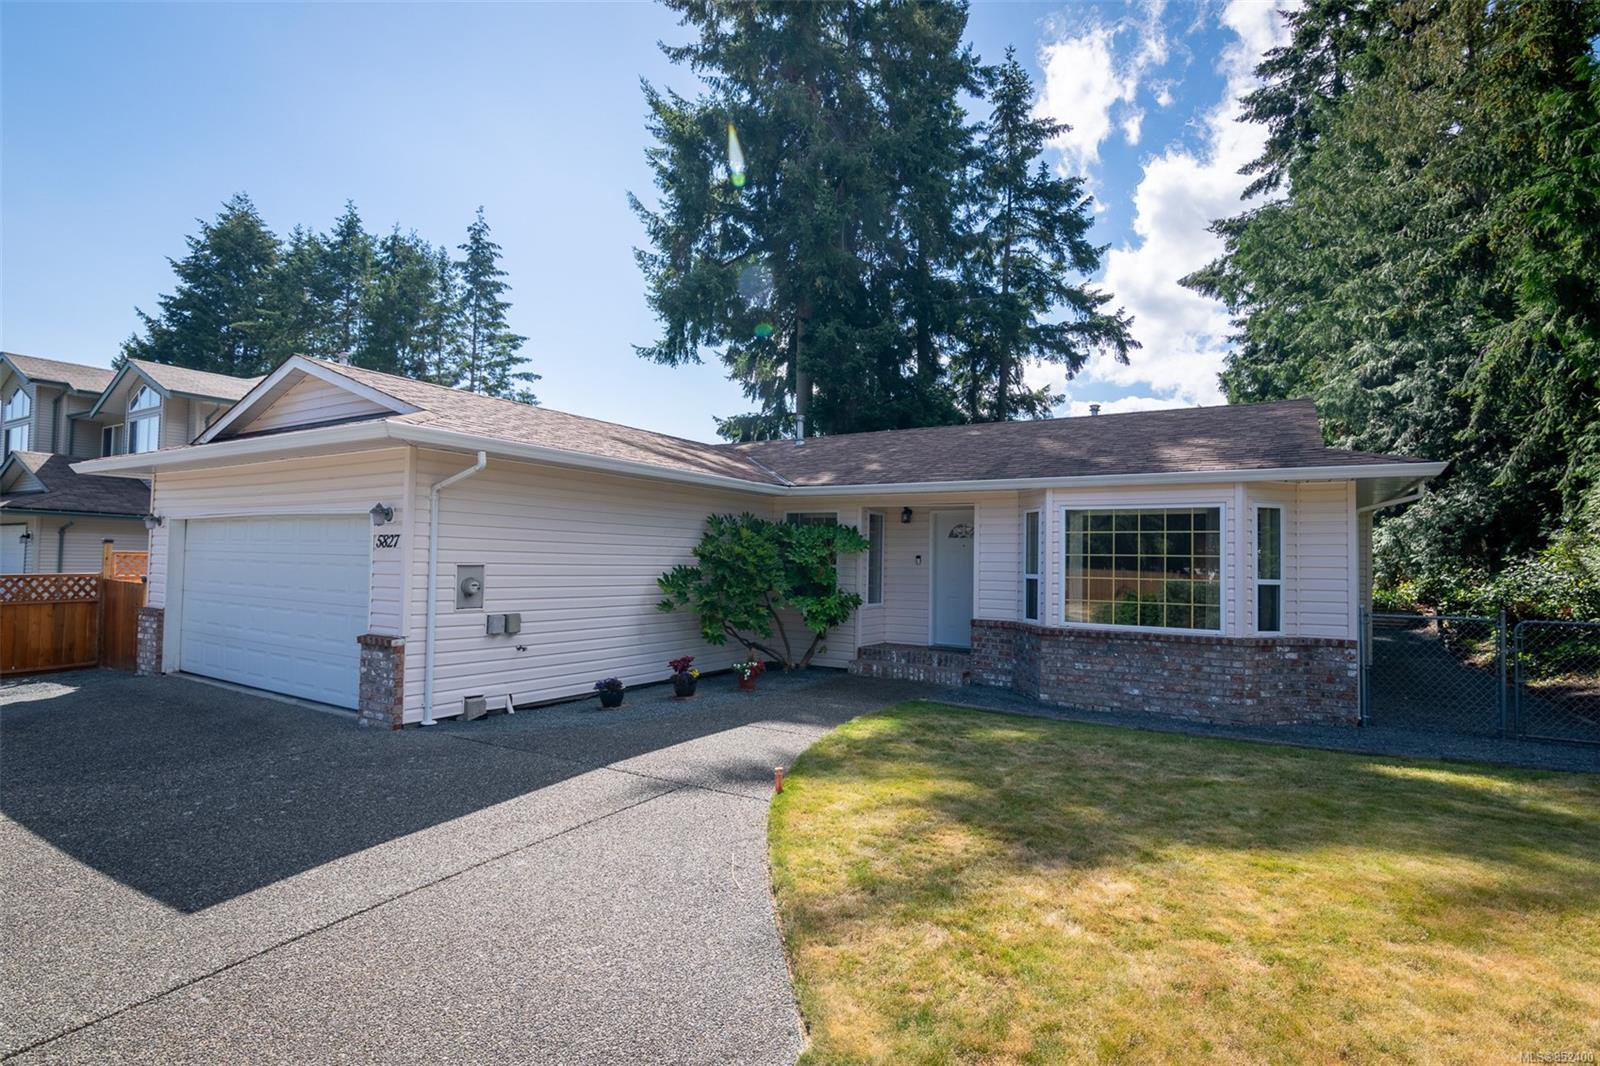 Main Photo: 5827 Brookwood Dr in : Na Uplands House for sale (Nanaimo)  : MLS®# 852400